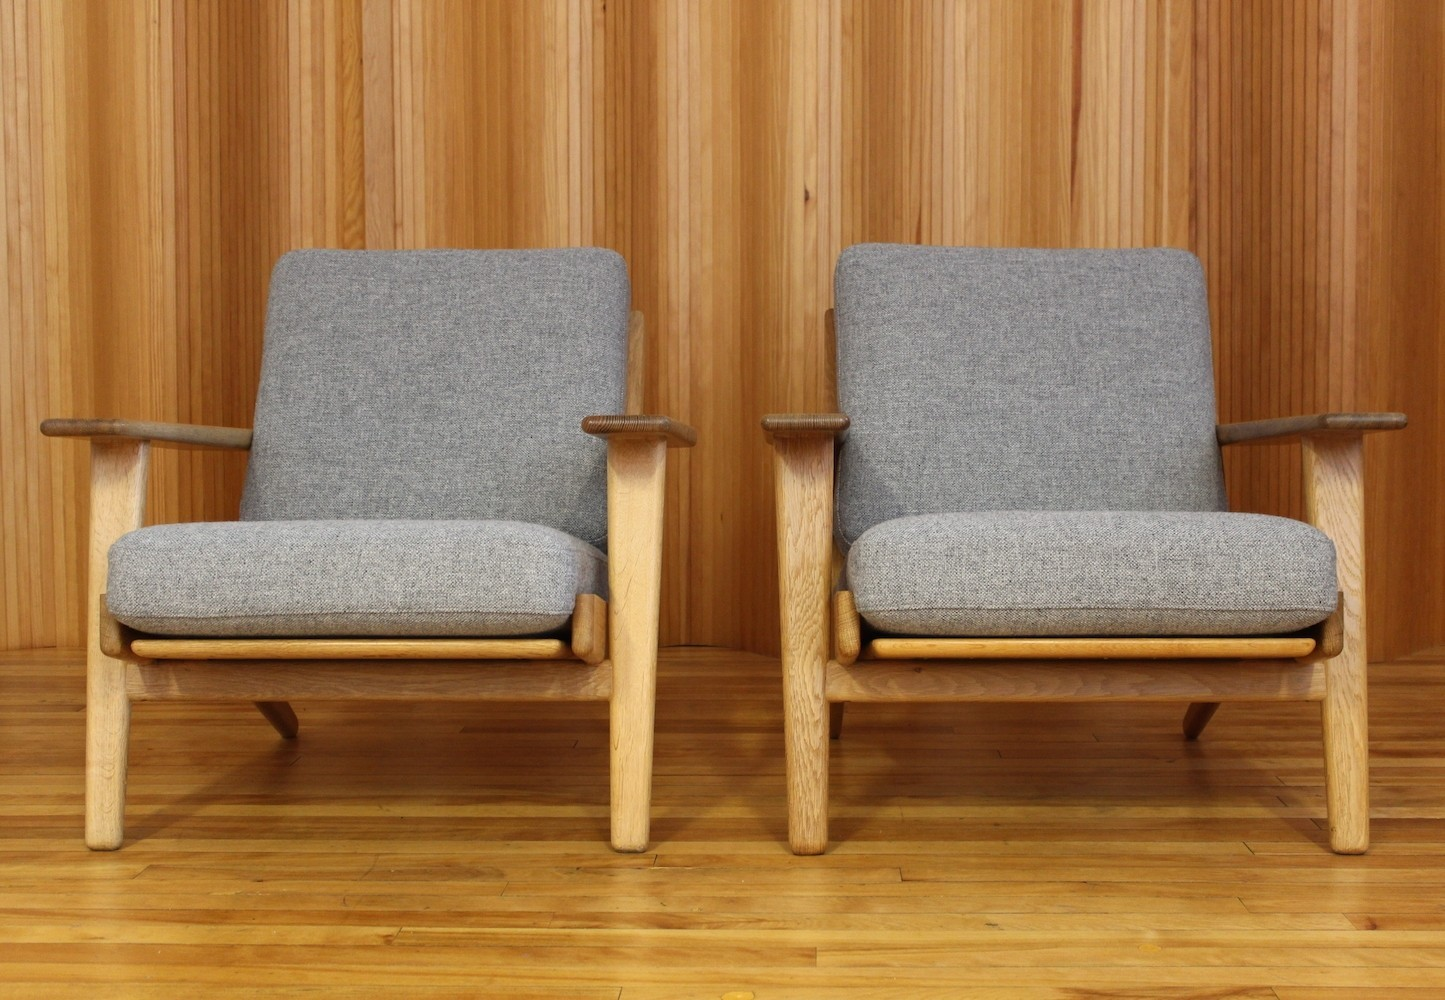 Pair of GE290 lounge chairs by Hans Wegner for Getama, 1950s